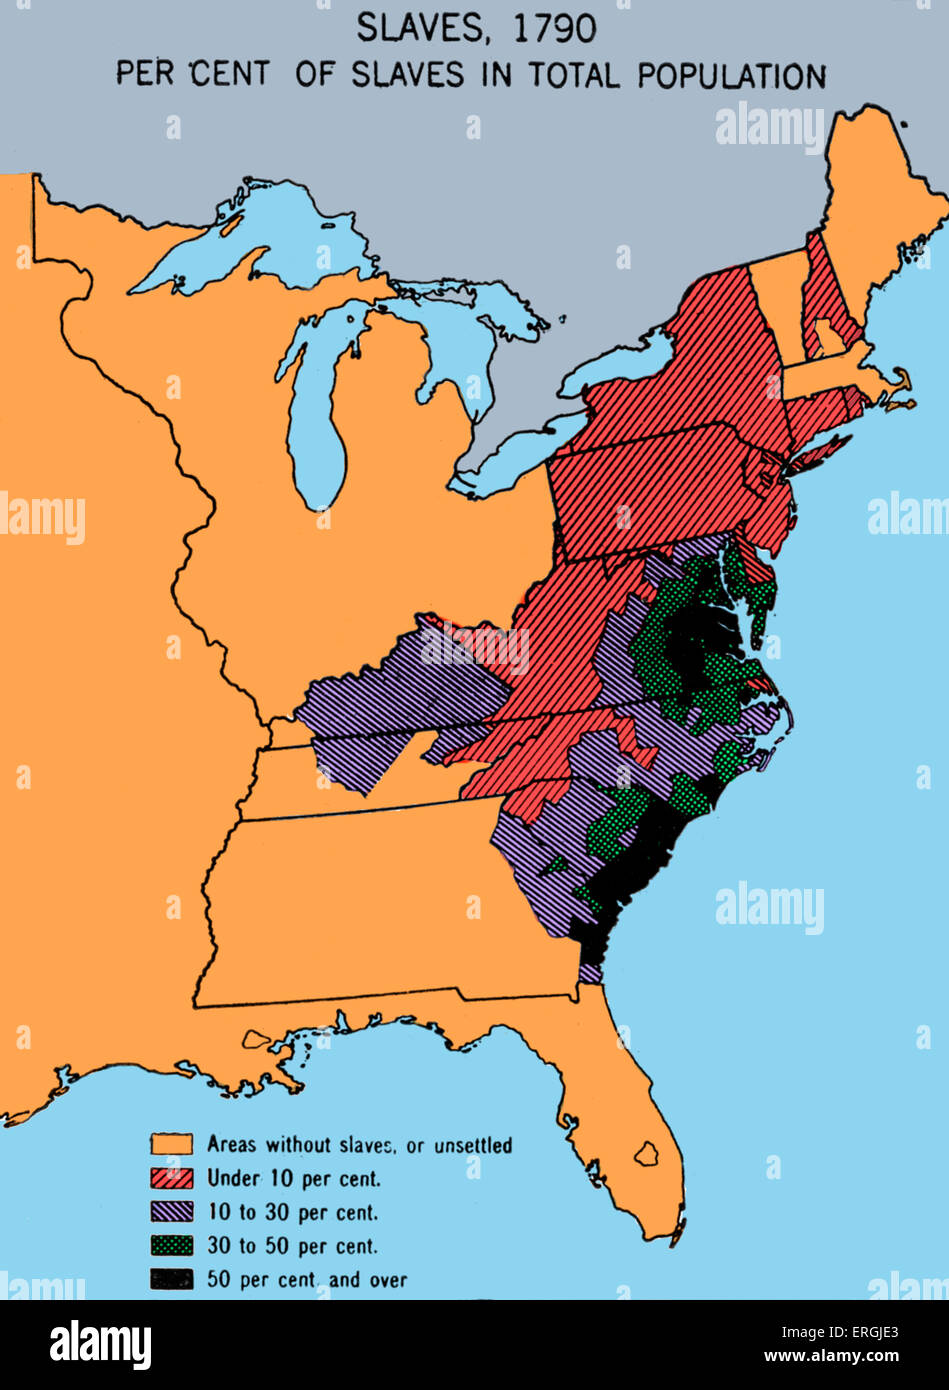 Map depicting density of slavery in theUSA in 1790. Shows chief slave states as Virginia and the Carolinas. - Stock Image